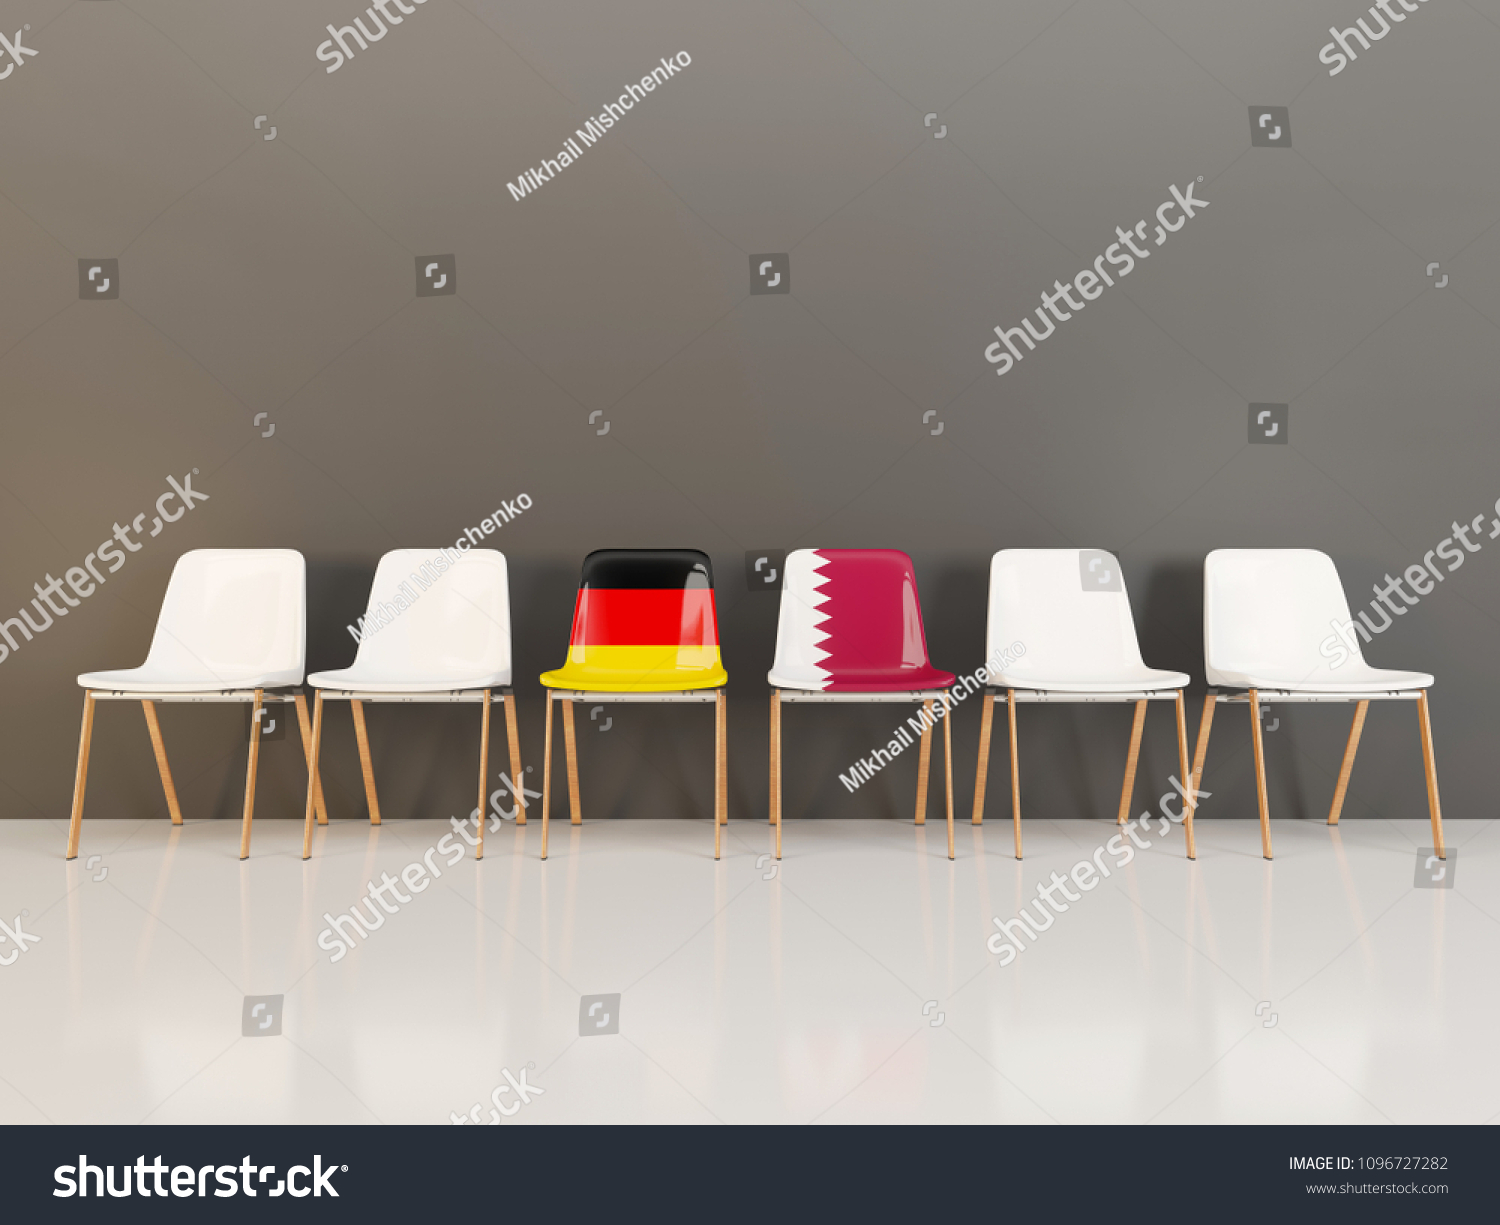 folding chair qatar kitchen side chairs flag germany row 3 d stock illustration royalty free with of and in a 3d